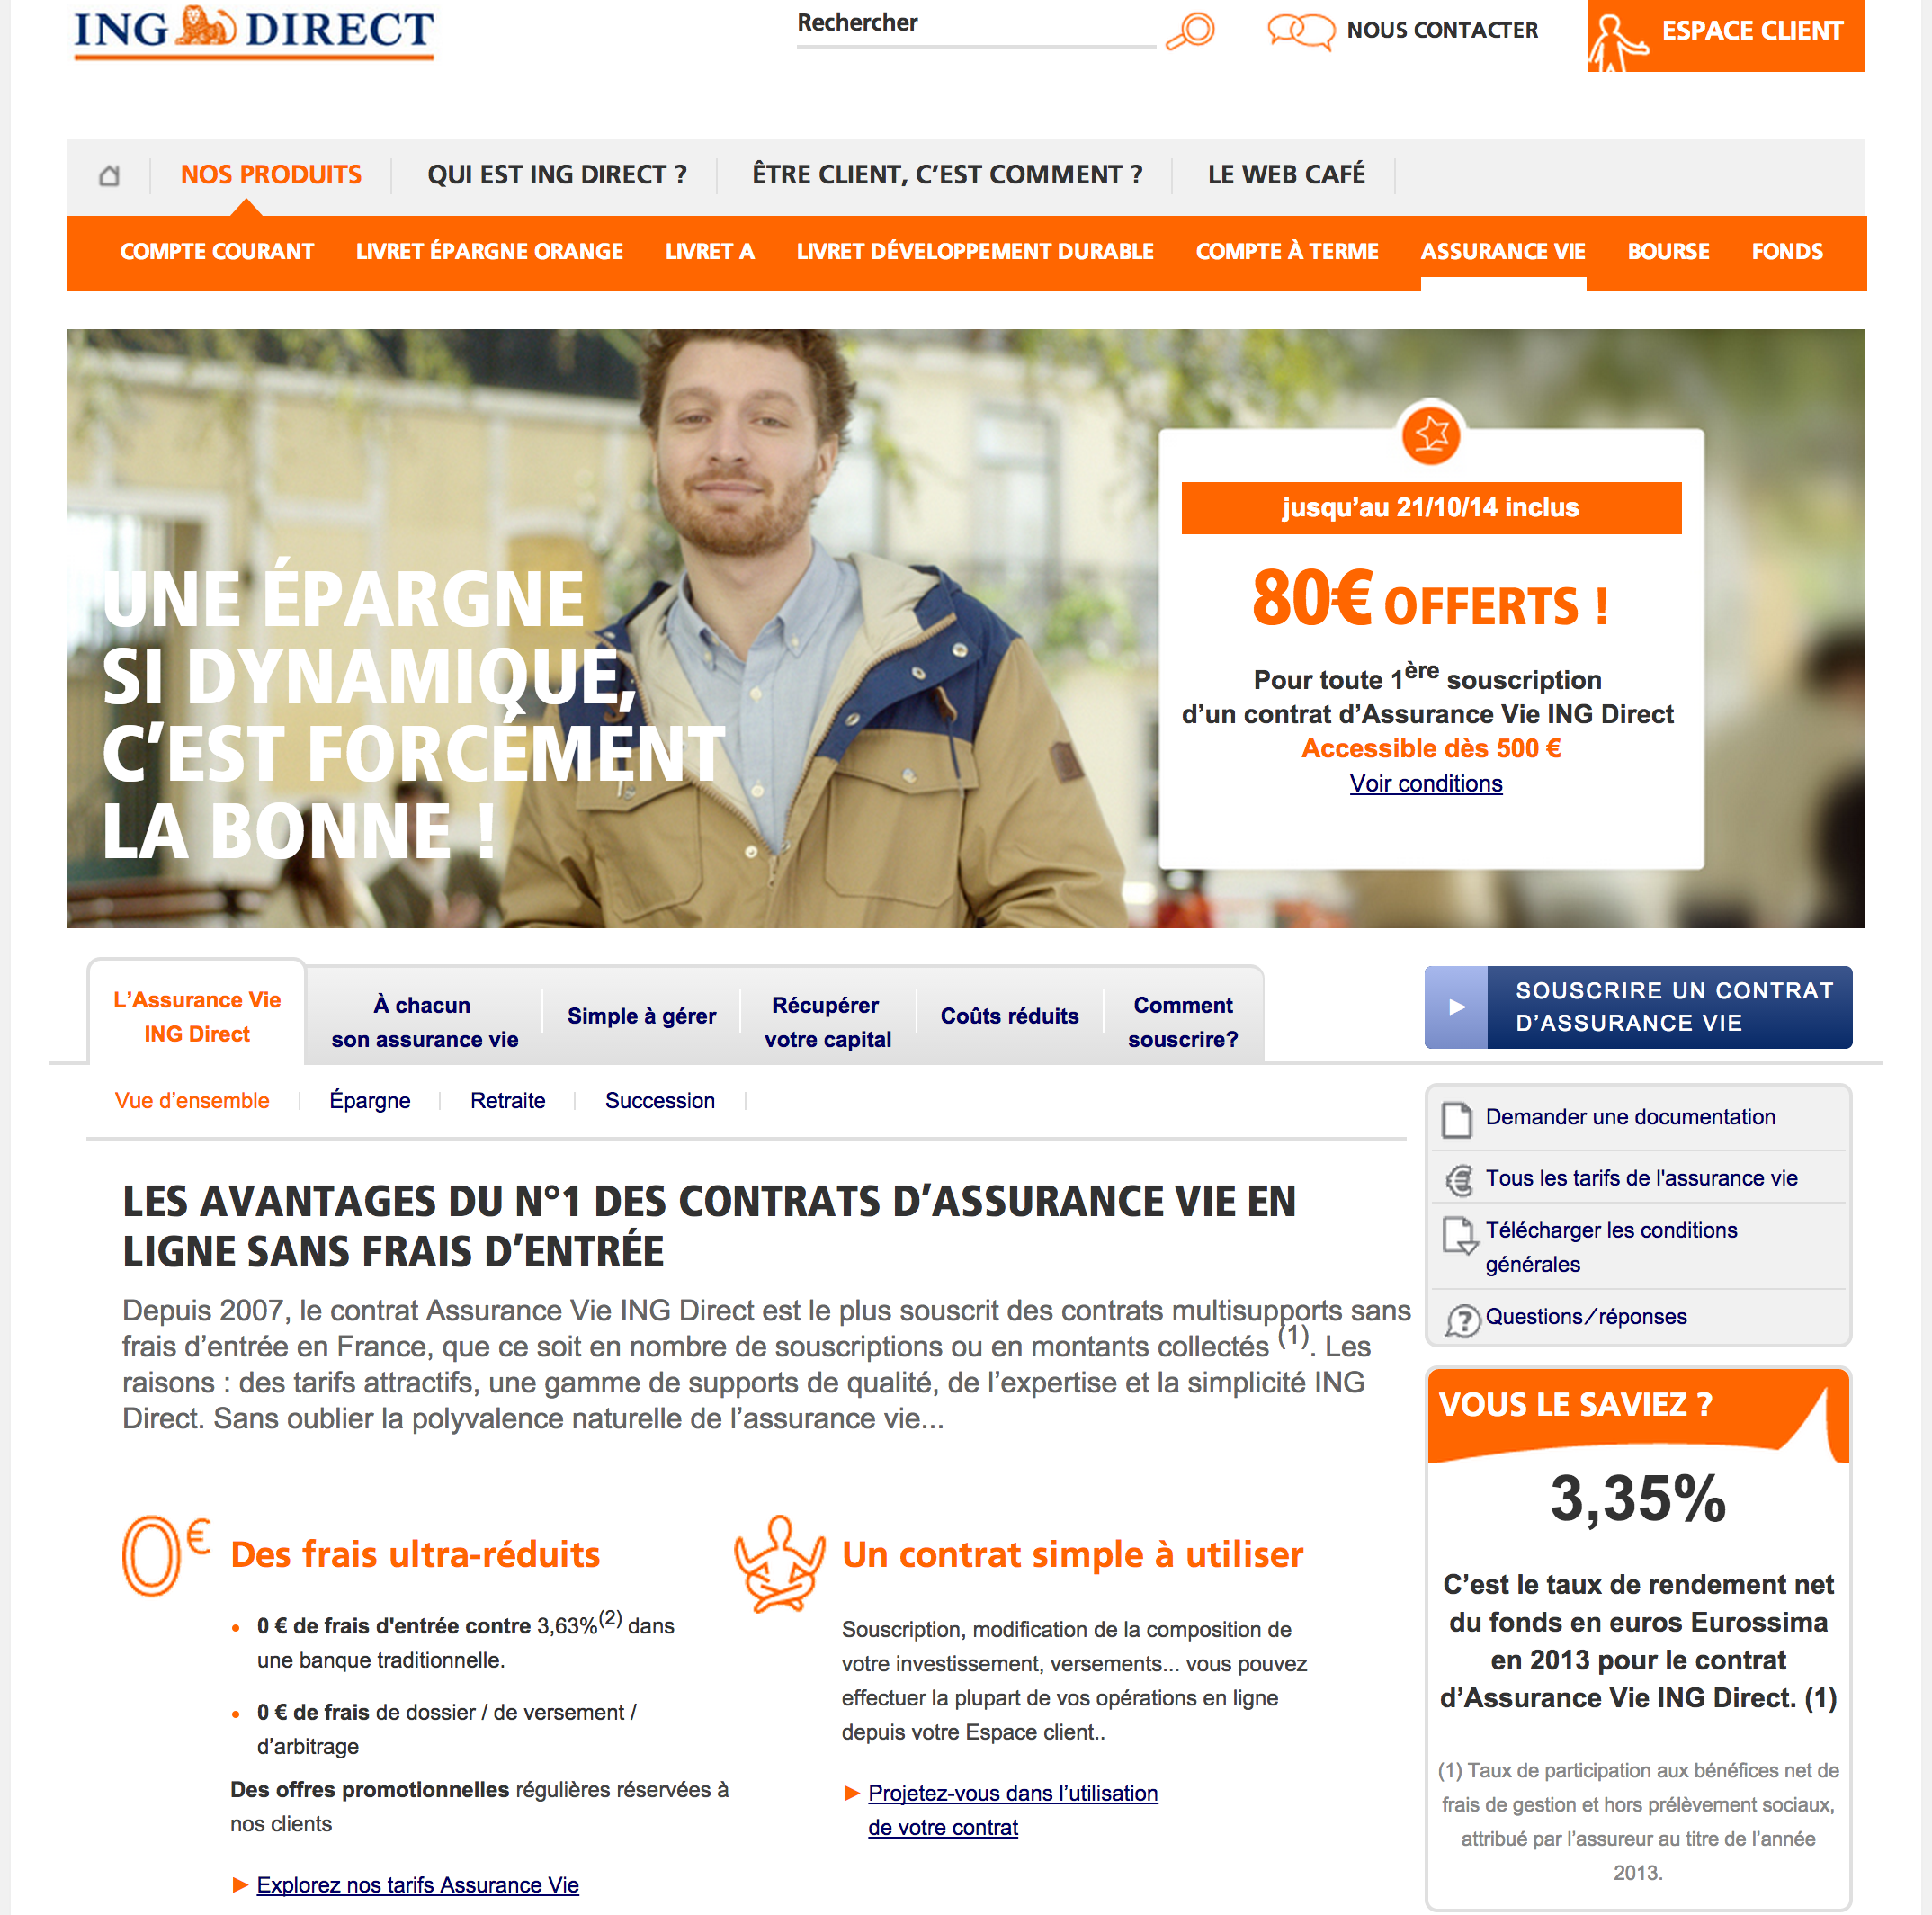 ING Direct product page